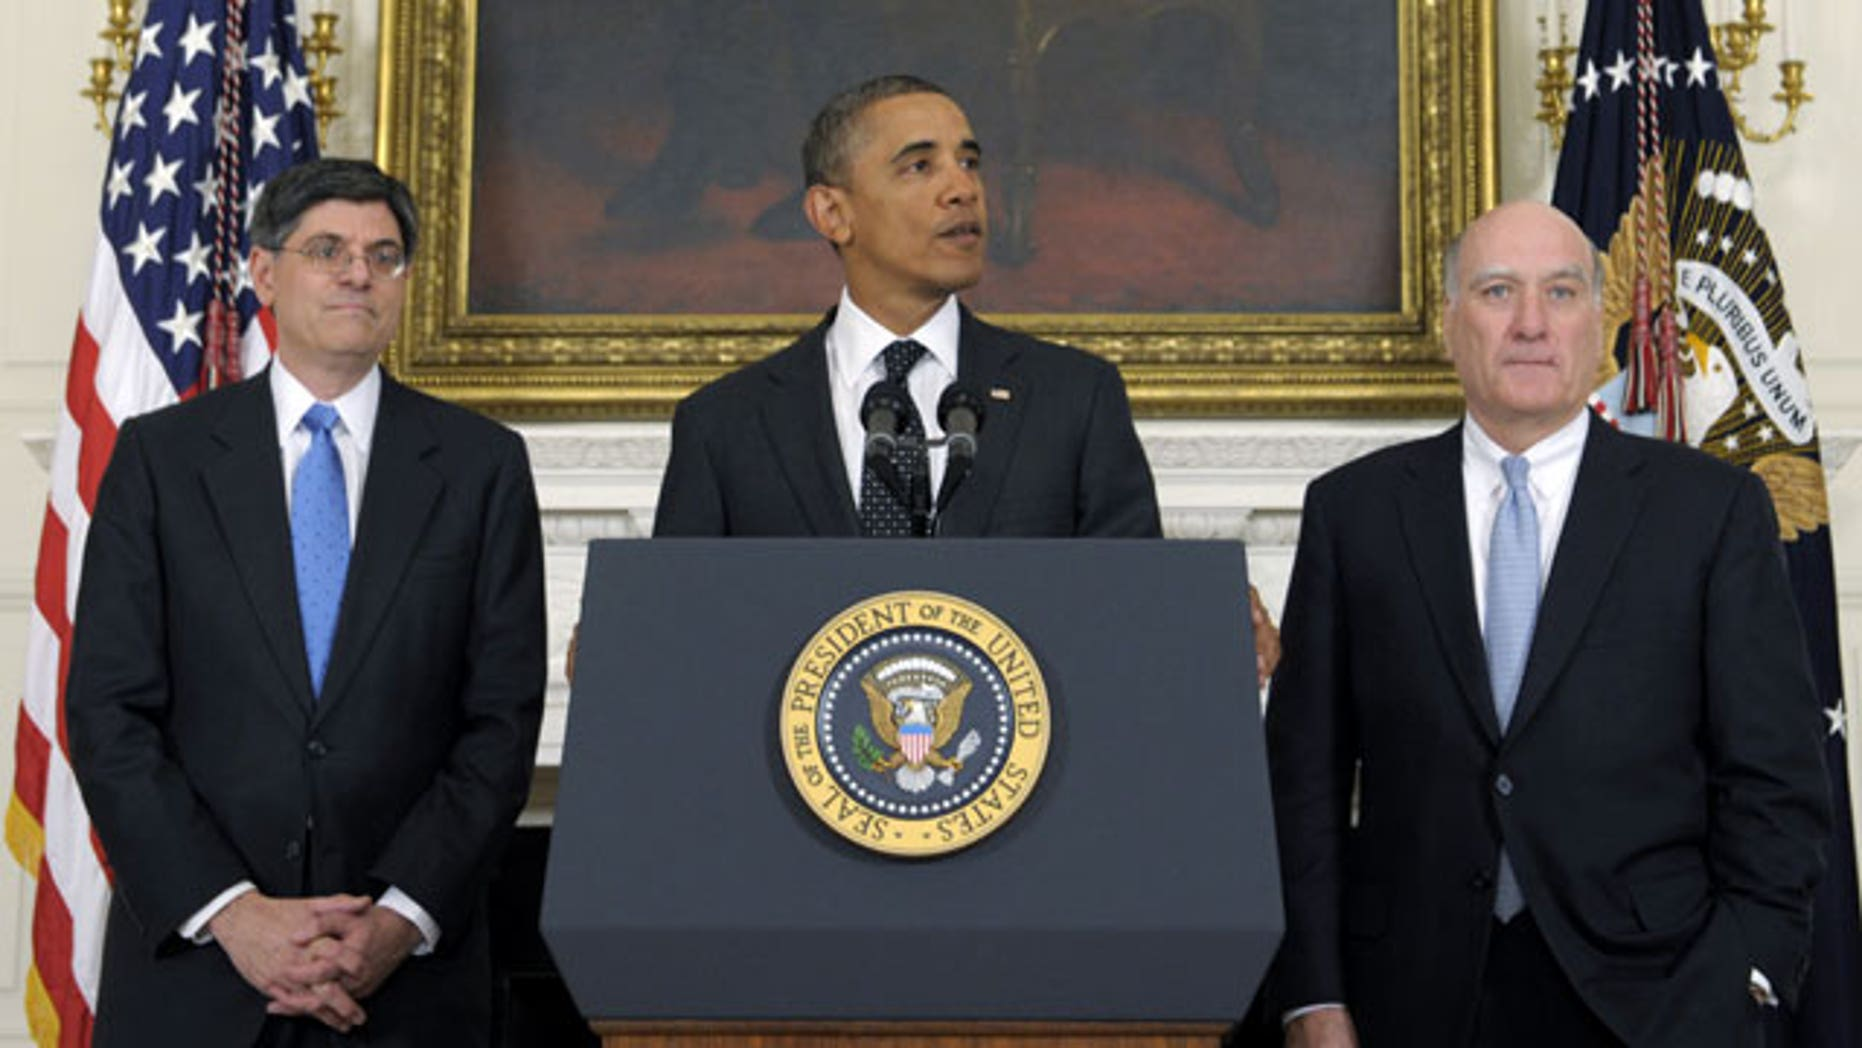 January 9, 2012: President Barack Obama, flanked by outgoing White House Chief of Staff William Daley, right, and his replacement, current Budget Director Jack Lew, makes, the changes announcement in the State Dining Room at the White House in Washington.